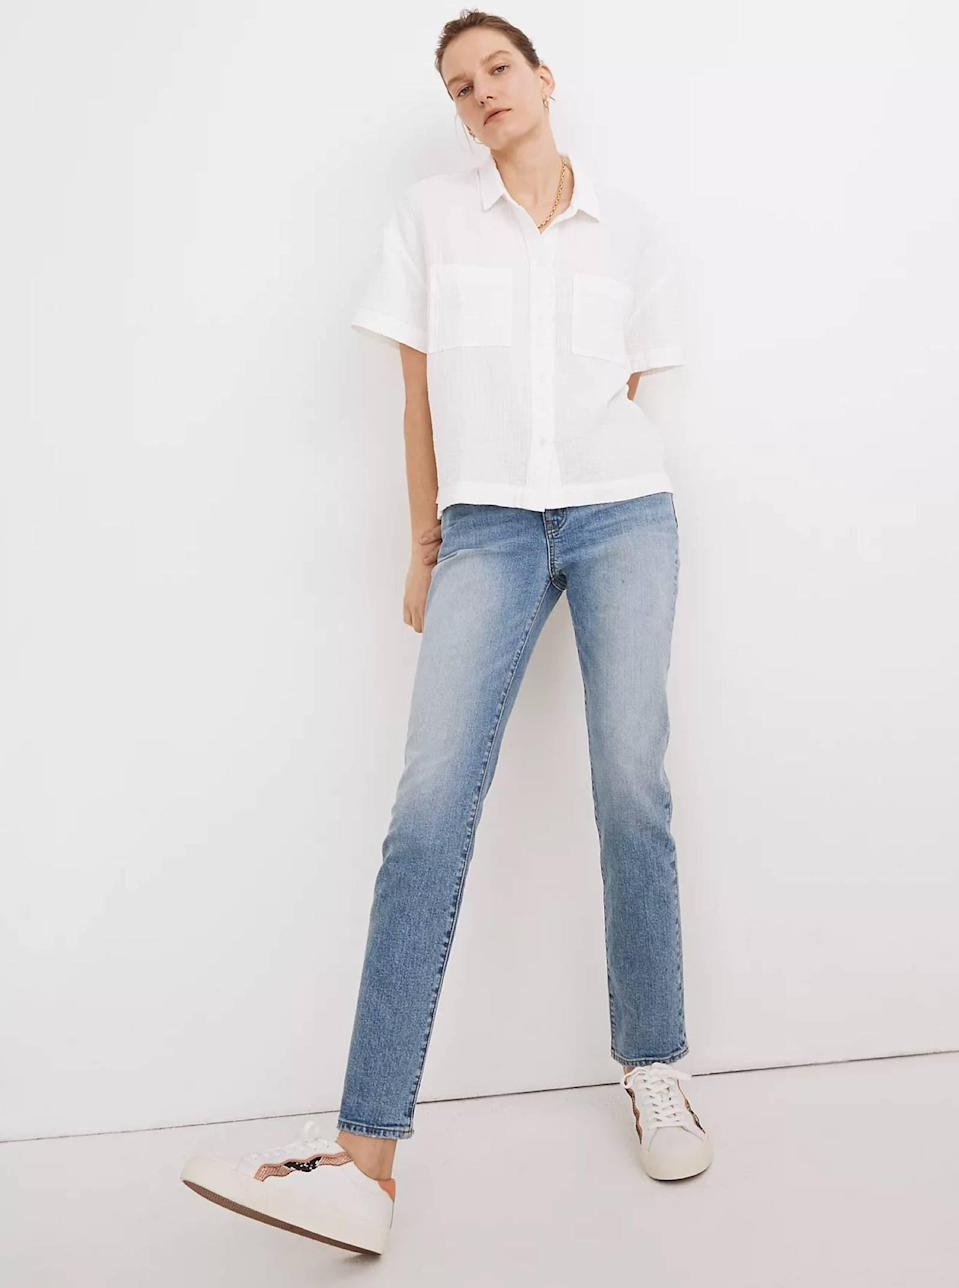 """Wear a <a href=""""https://www.glamour.com/gallery/best-white-button-down-shirts-women?mbid=synd_yahoo_rss"""" rel=""""nofollow noopener"""" target=""""_blank"""" data-ylk=""""slk:white button-down"""" class=""""link rapid-noclick-resp"""">white button-down</a> closed, or leave it open over a <a href=""""https://www.glamour.com/gallery/best-slip-dresses?mbid=synd_yahoo_rss"""" rel=""""nofollow noopener"""" target=""""_blank"""" data-ylk=""""slk:slip dress"""" class=""""link rapid-noclick-resp"""">slip dress</a> for a perfect layered spring look. $59.5, Madewell. <a href=""""https://www.madewell.com/lightspun-beachside-shirt-MC806.html"""" rel=""""nofollow noopener"""" target=""""_blank"""" data-ylk=""""slk:Get it now!"""" class=""""link rapid-noclick-resp"""">Get it now!</a>"""